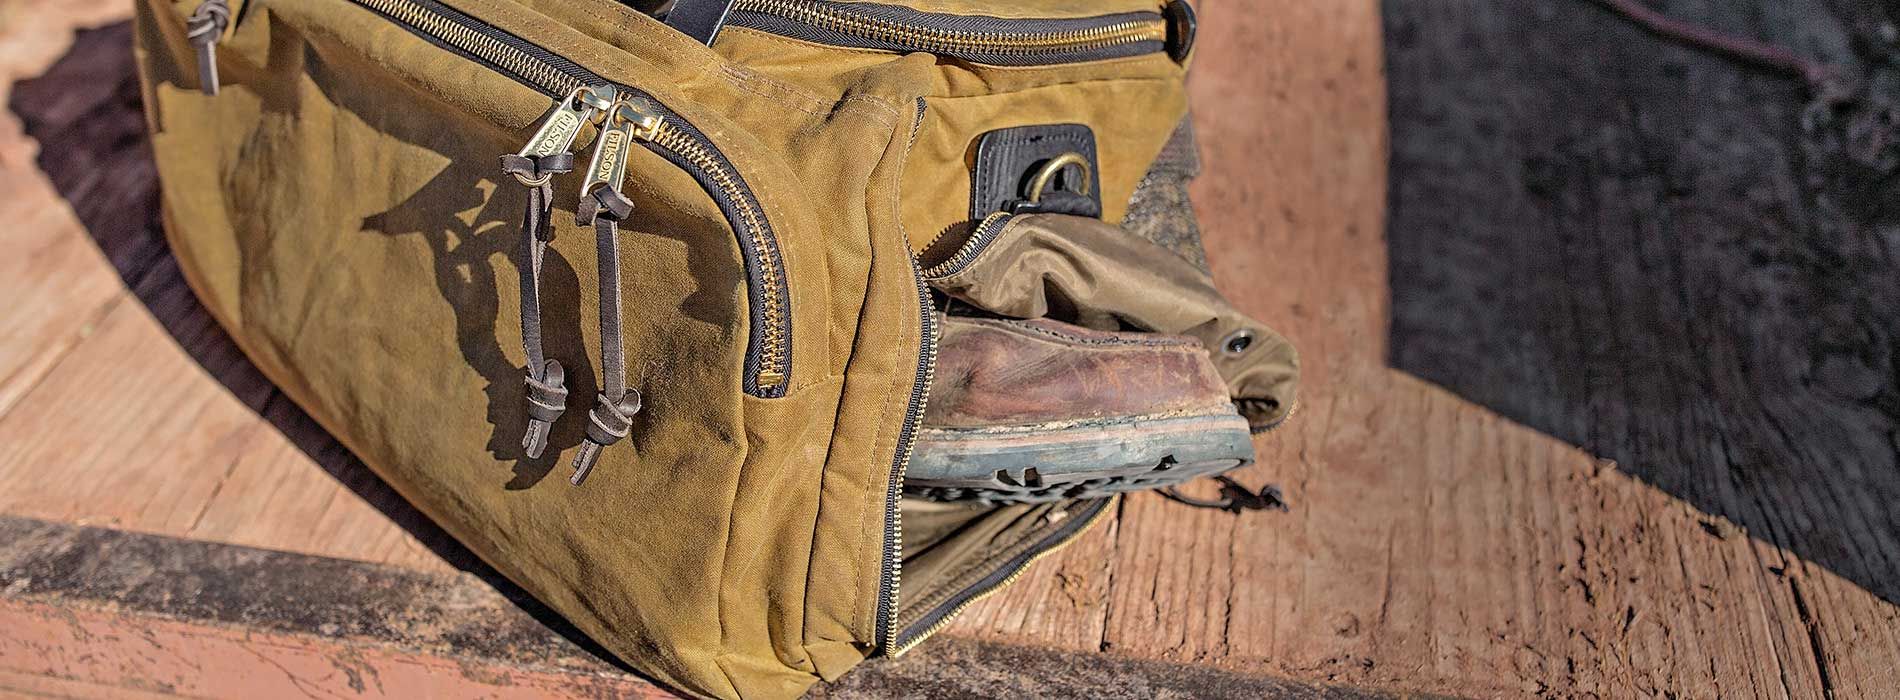 Filson Excursion Bag in the field